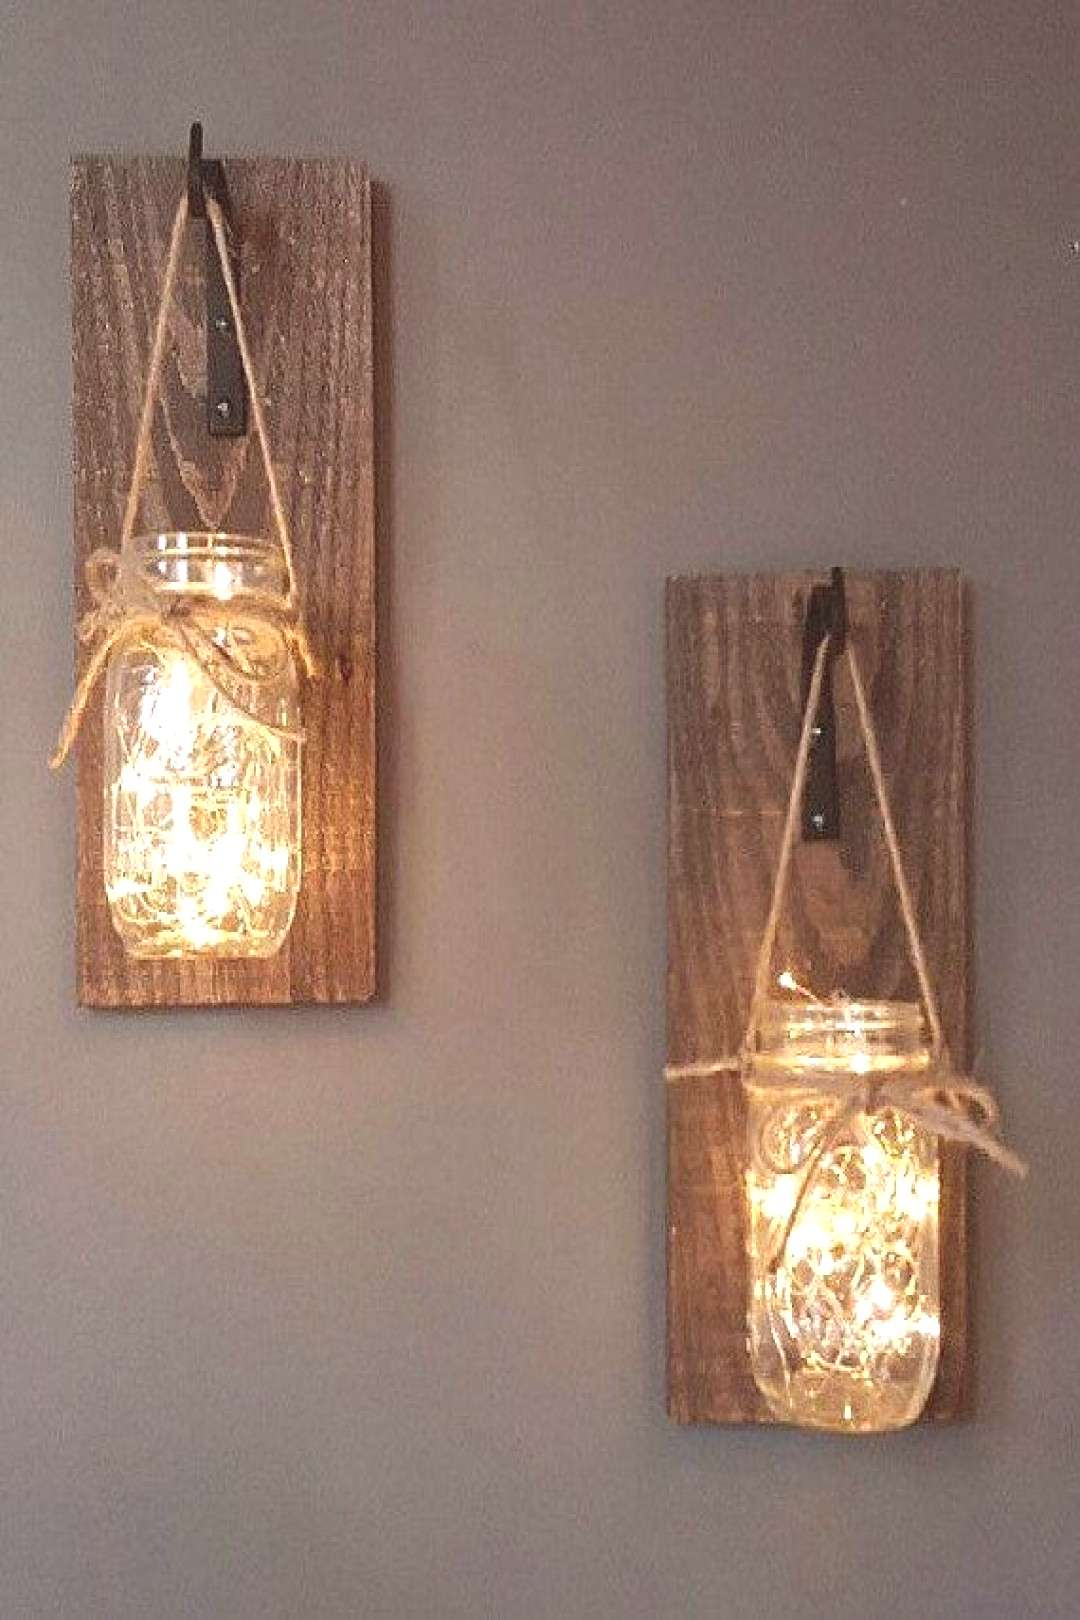 This listing is for a Set of 2 stunning Hanging Mason Jar Sconces. These sconces are hand crafted w